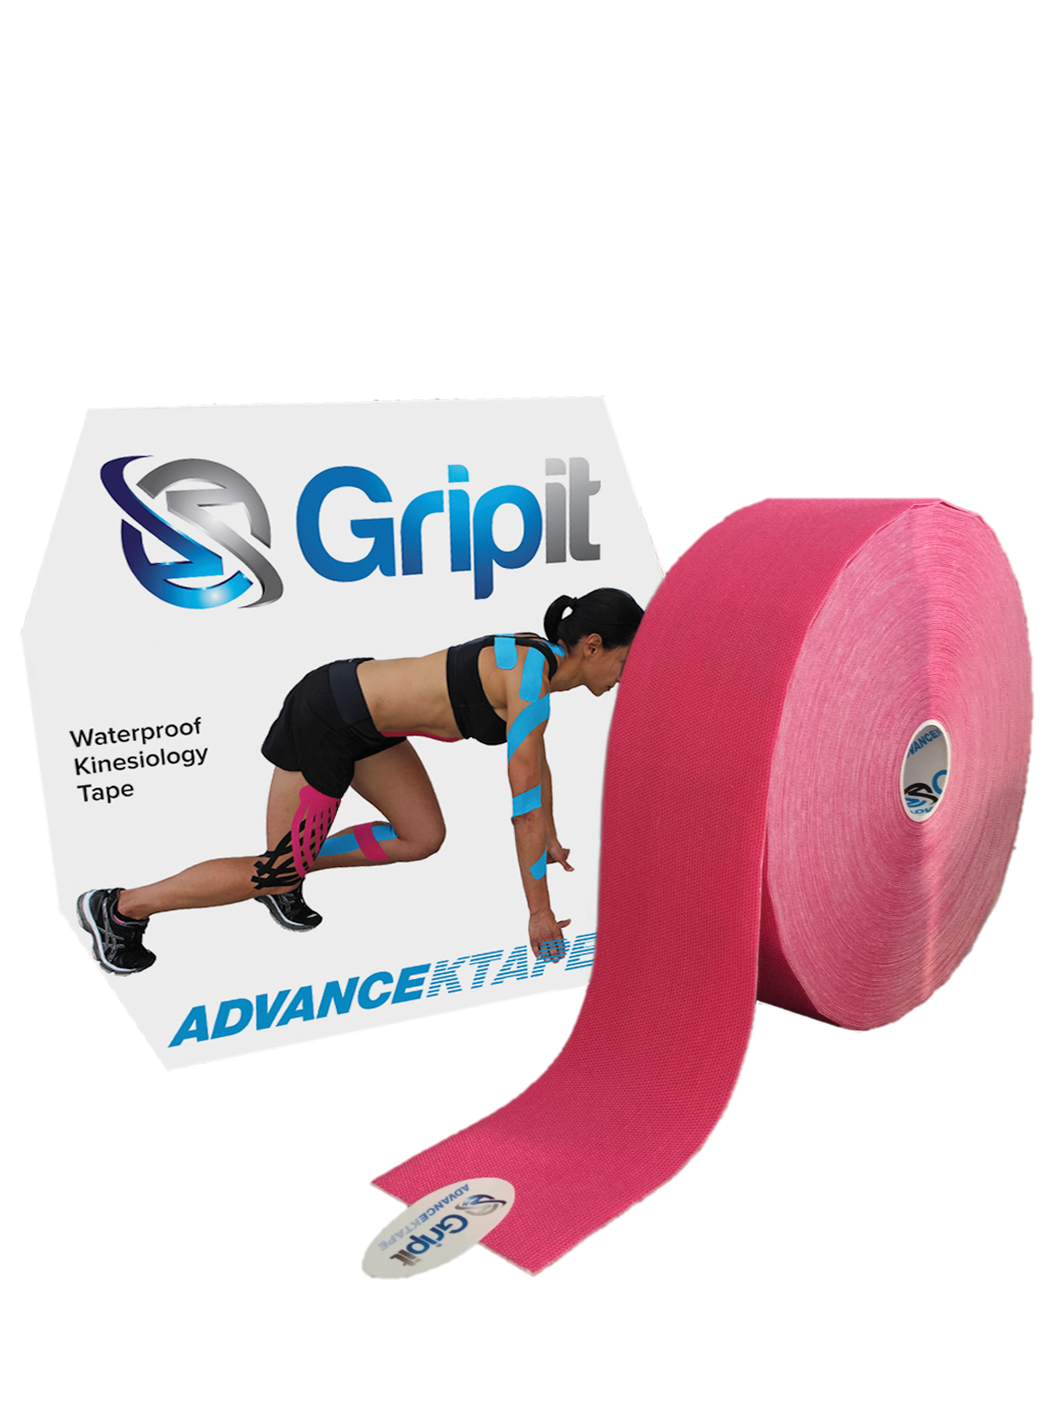 GRIPIT ADVANCE WATERPROOF KINESIOLOGY TAPE - JUMBO ROLL - 2